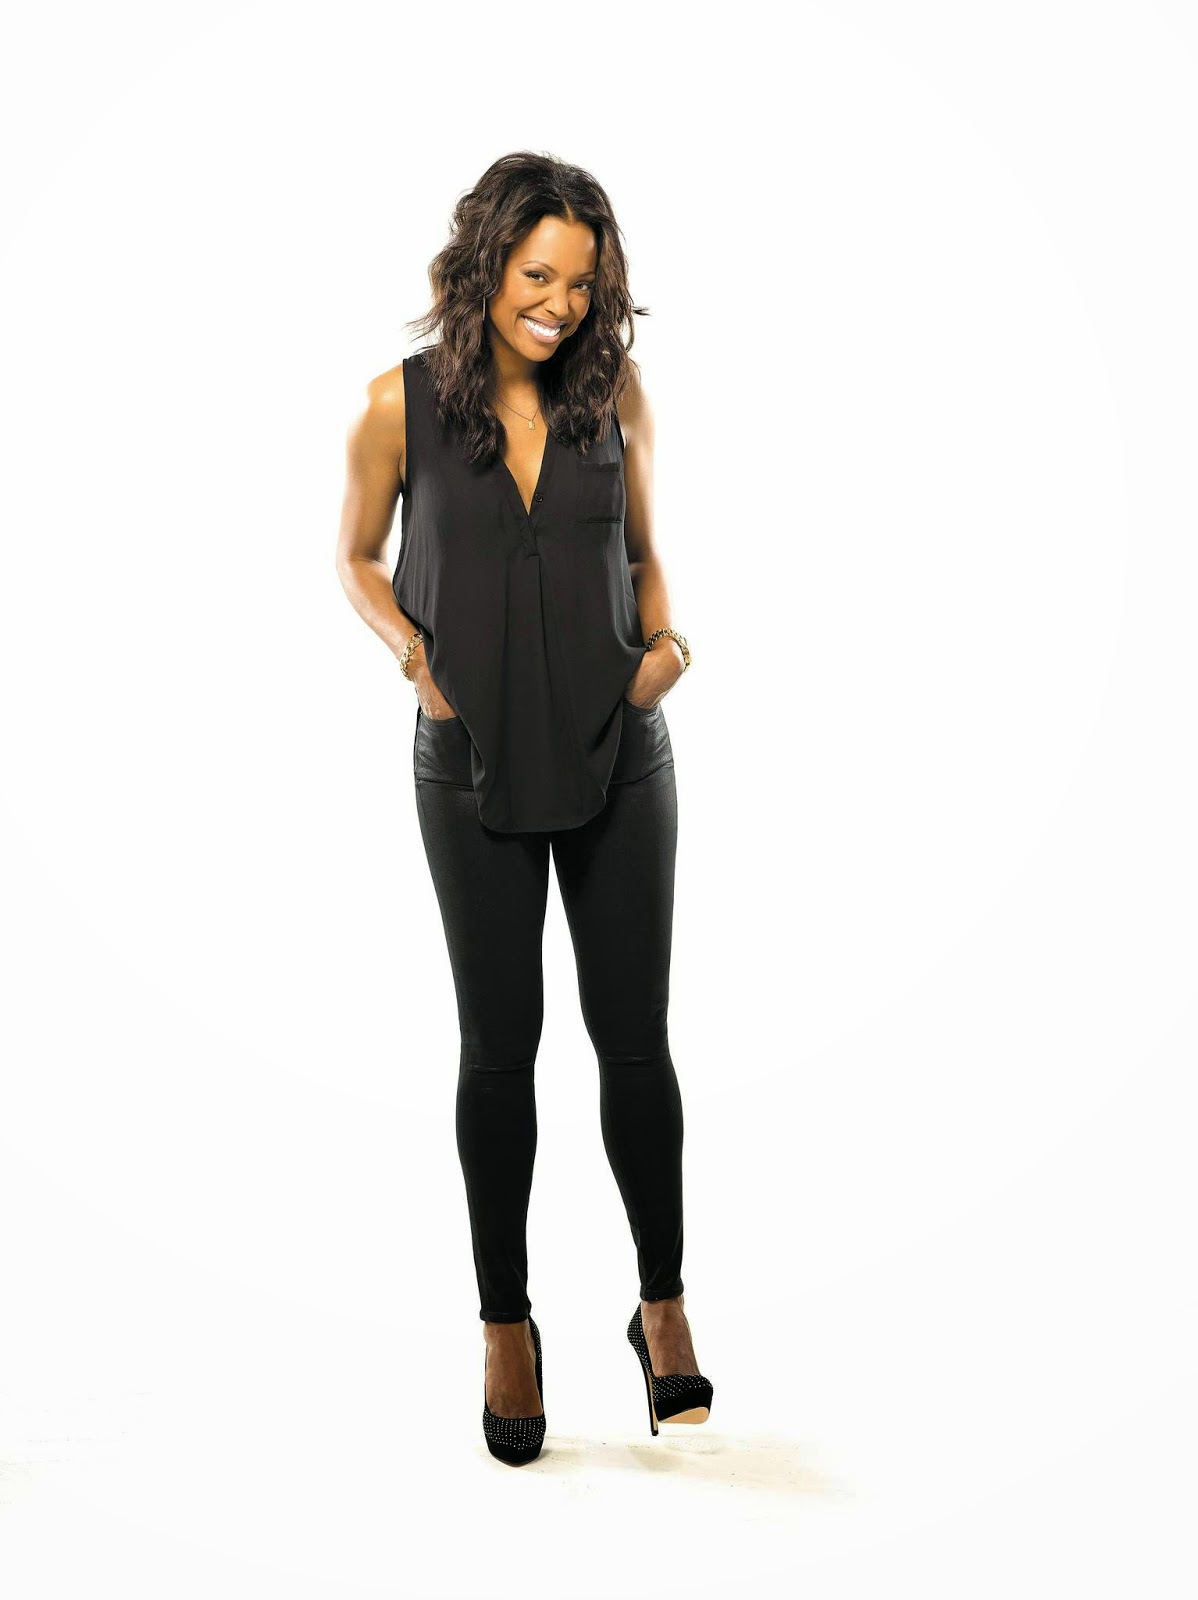 Aisha Tyler Sexy Photos